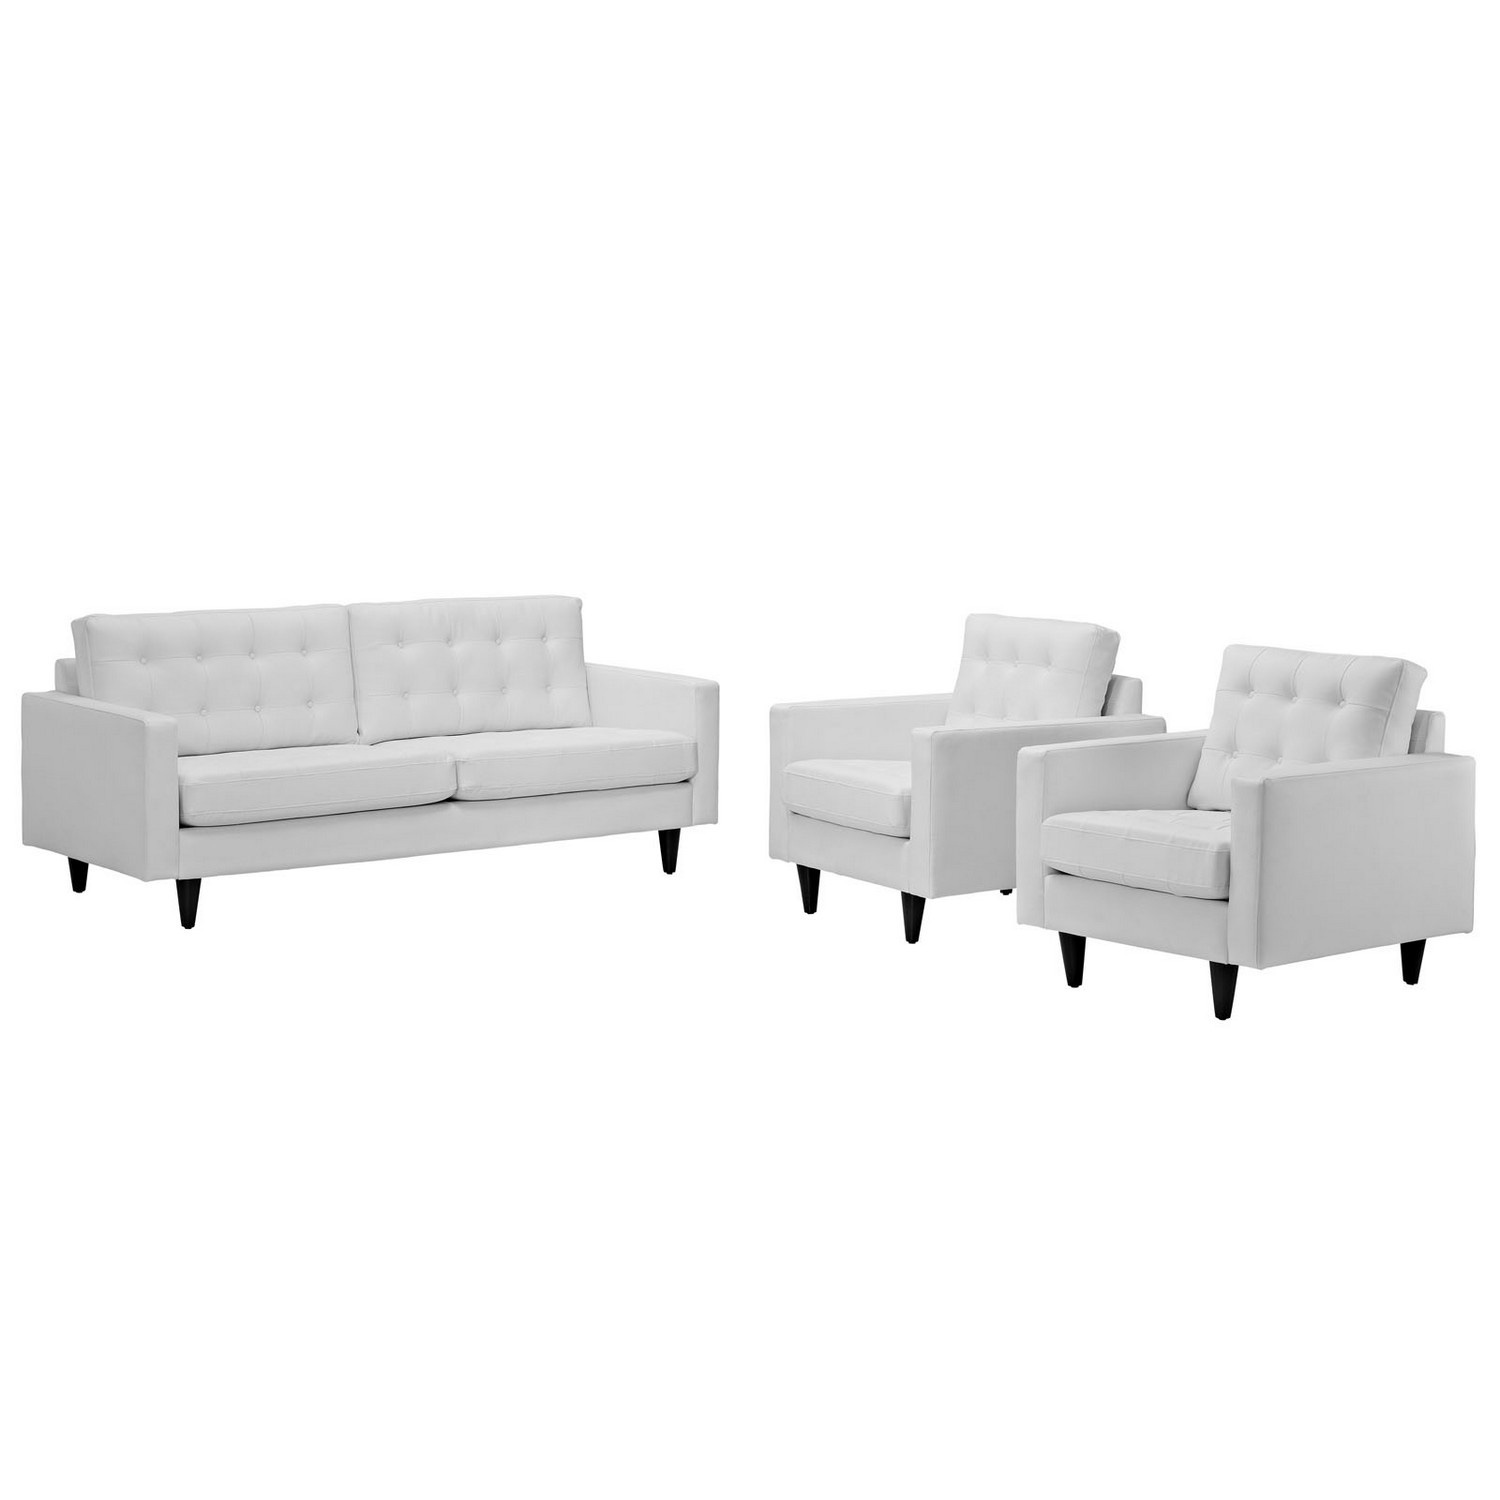 Modway Empress 3PC Sofa and Armchairs Set- White